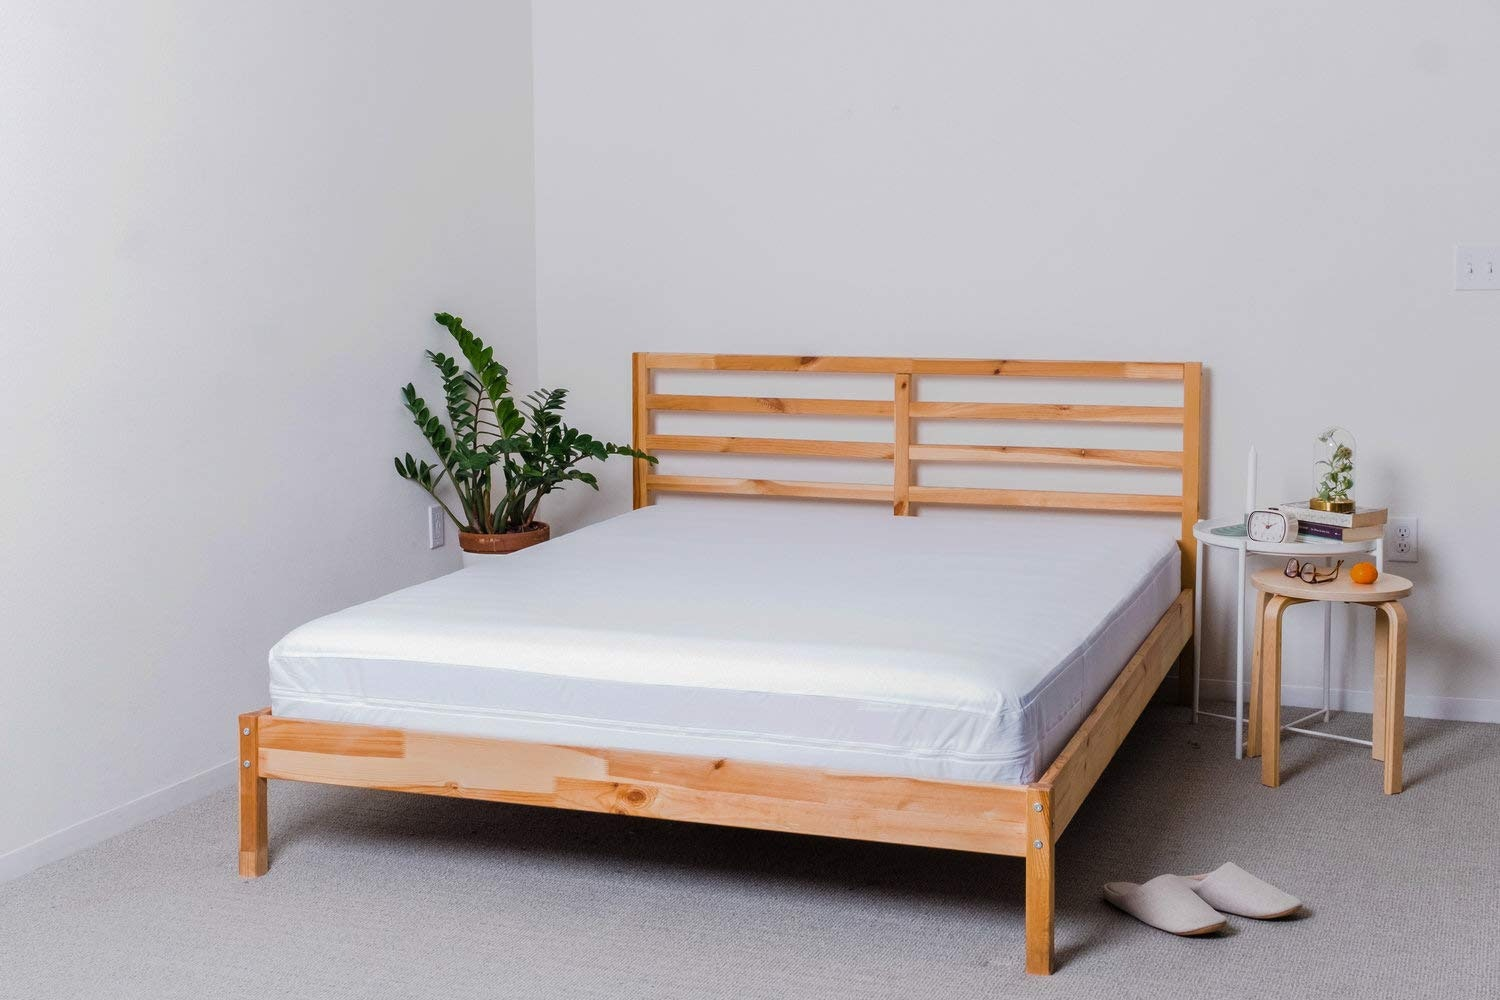 Bed Bugs Mattress Cover The 3 Best Mattress Covers For Bed Bugs